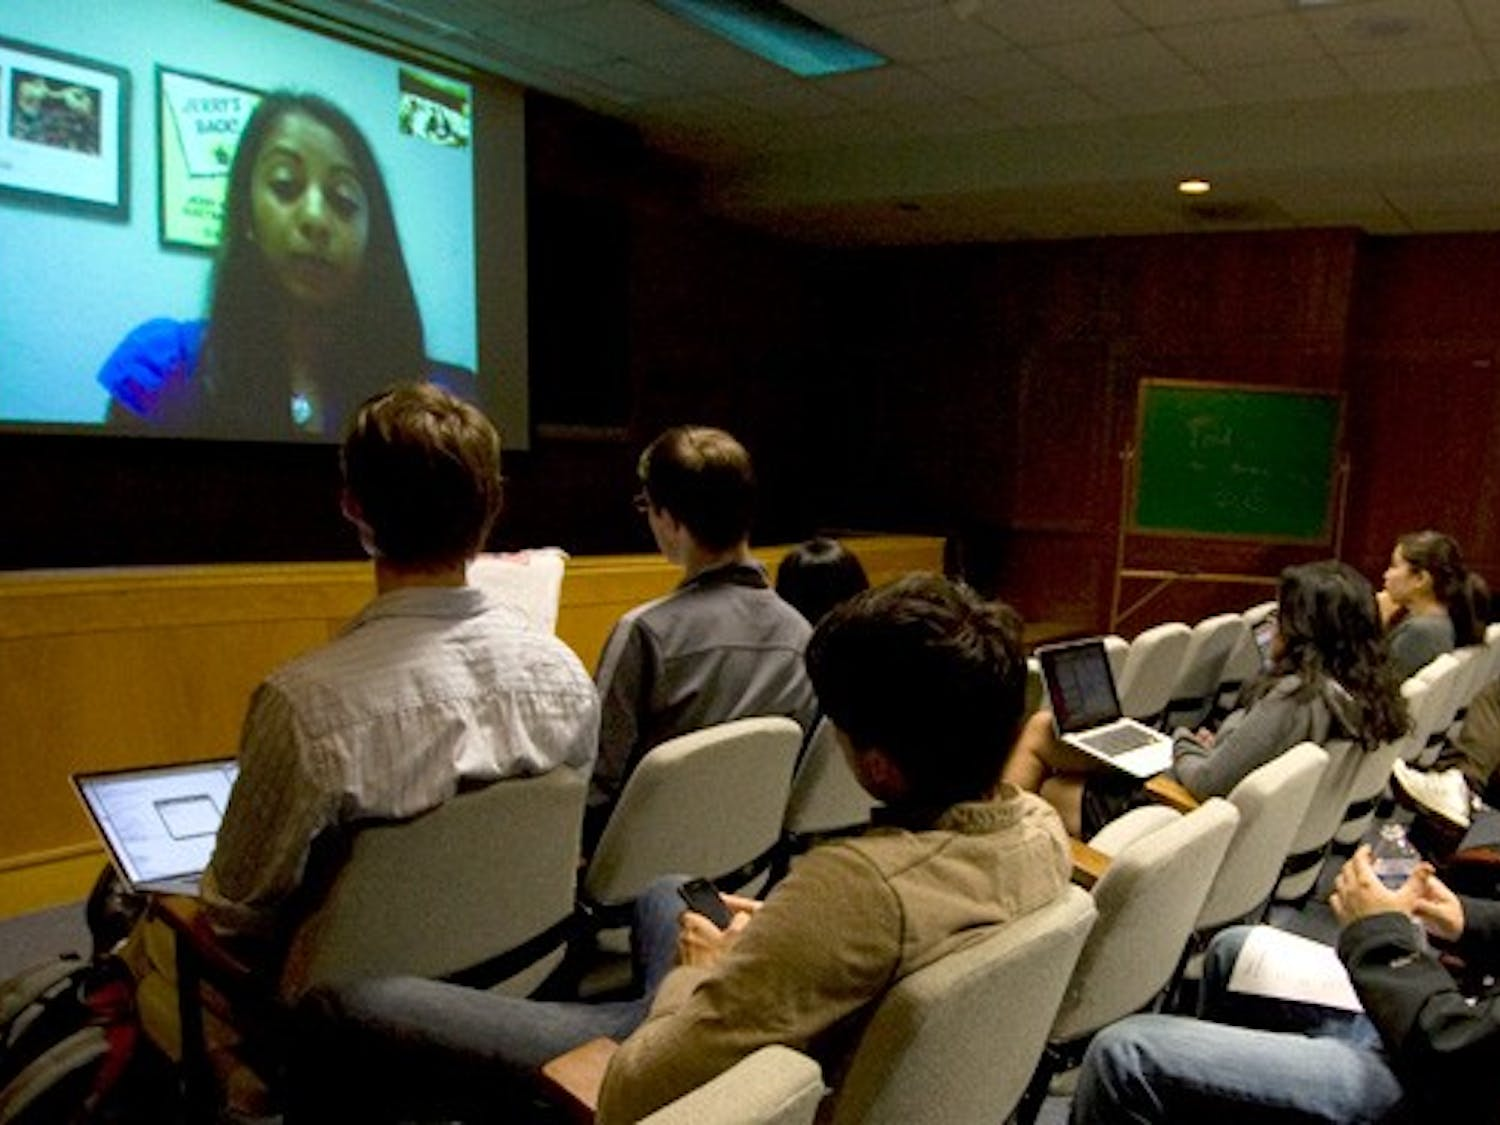 Vijayanshankar delivered a lecture Thursday in Teer 203 via skype on business start-up,  stressing the importance of execution over the original idea.